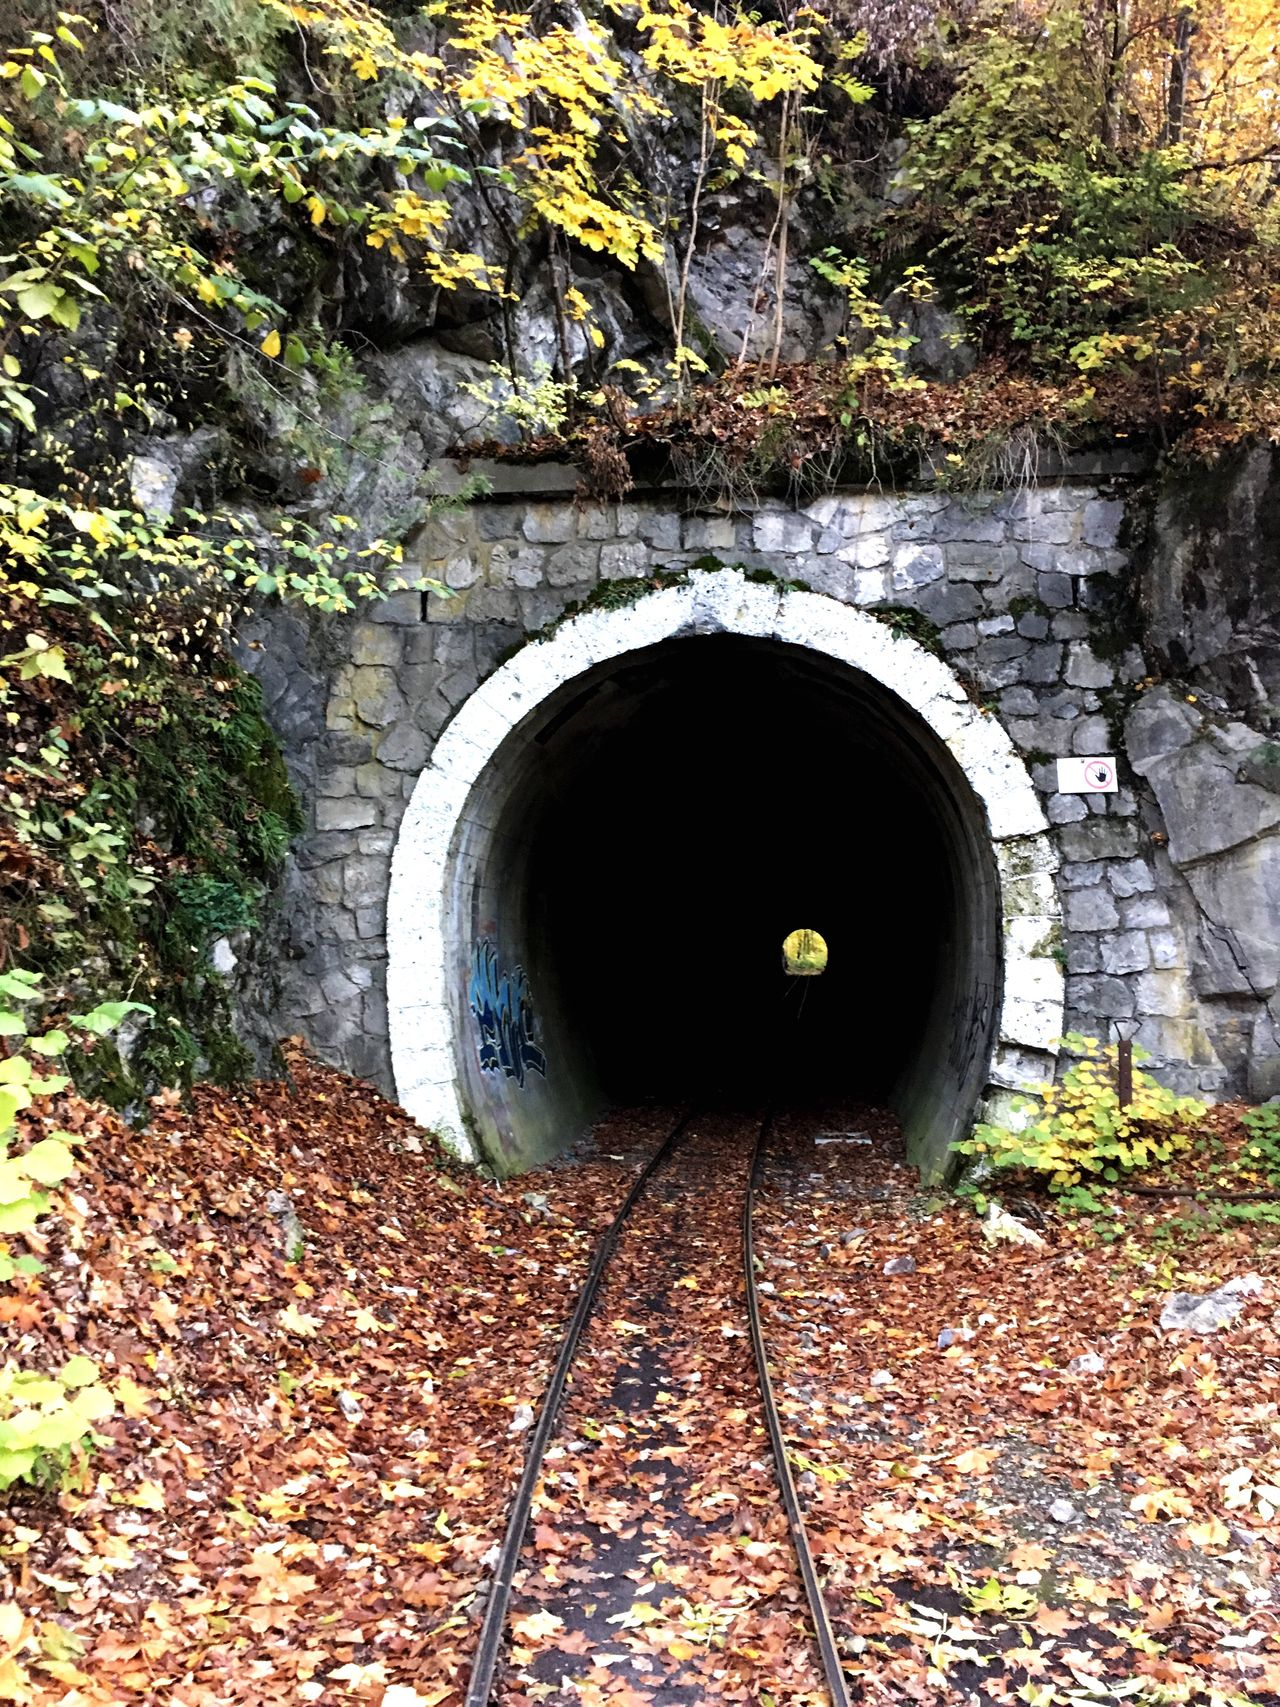 Pipe - Tube Autumn Outdoors No People Tunnel Nature Day Bükk Light At The End Of The Tunnel End Mistery Darkness And Light Fall Autumn Collection Adapted To The City The Secret Spaces